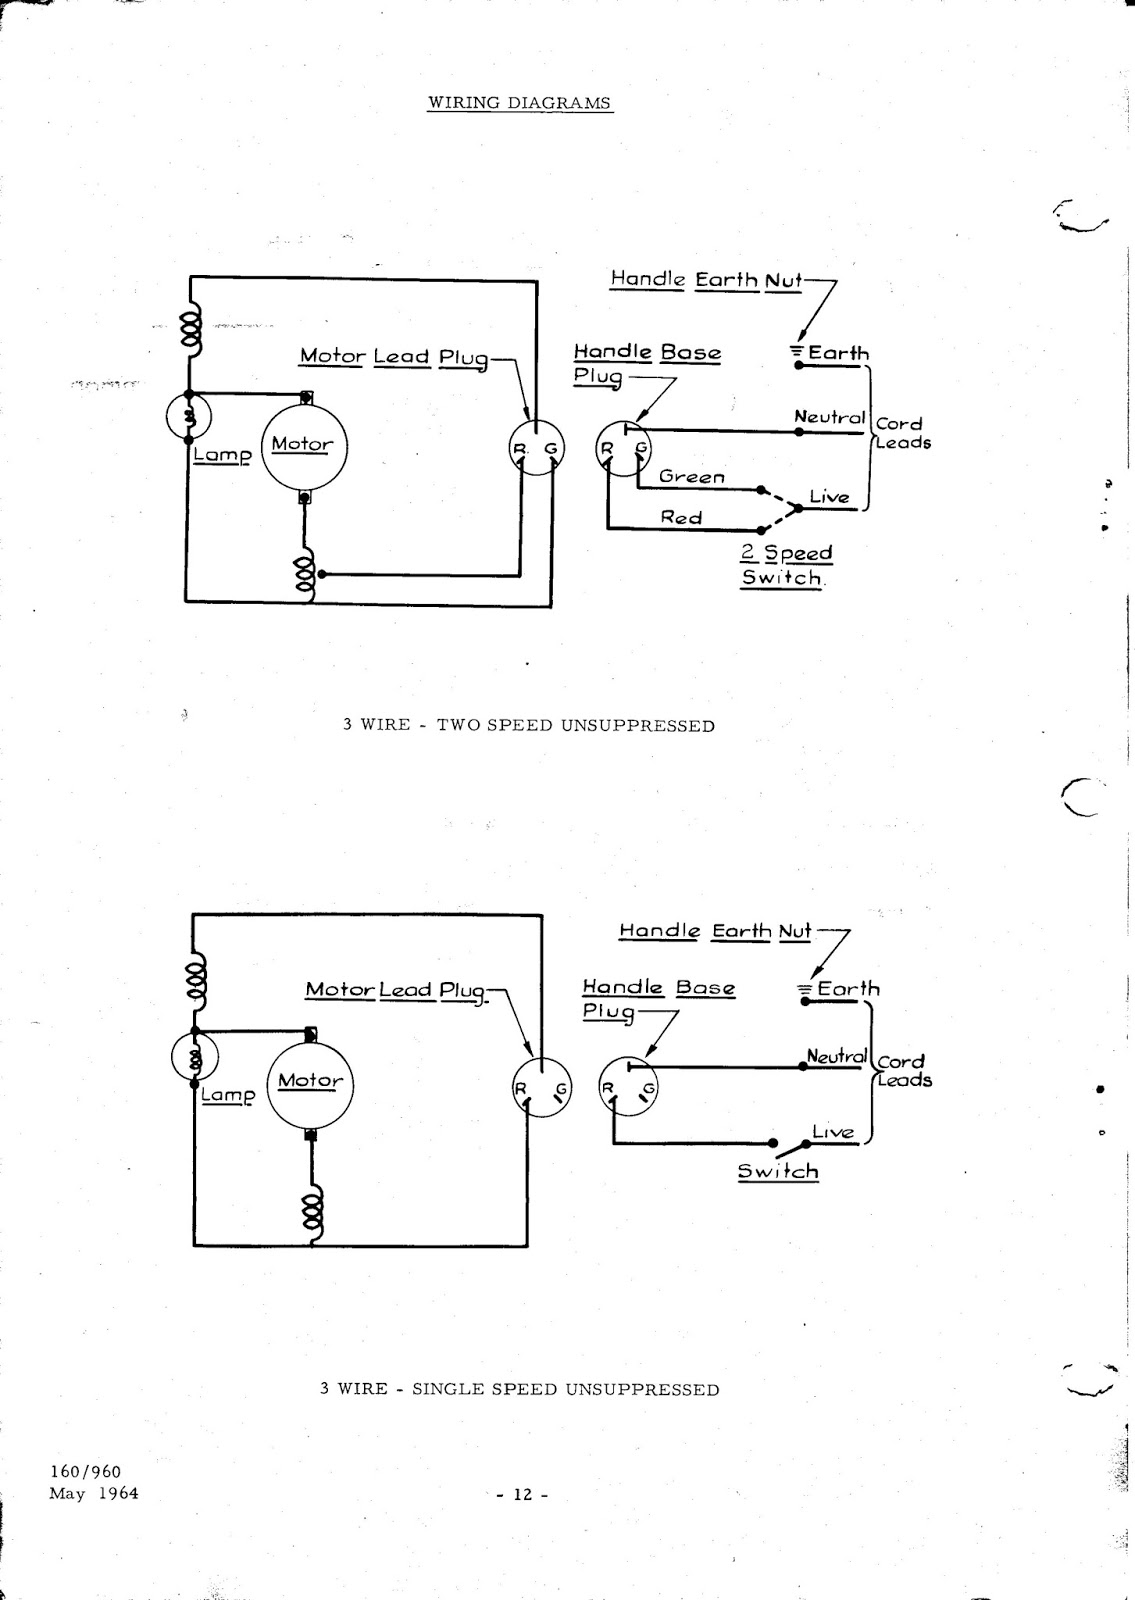 0012 hoover 160 & 190 service manual parts list henry hoover switch wiring diagram at crackthecode.co